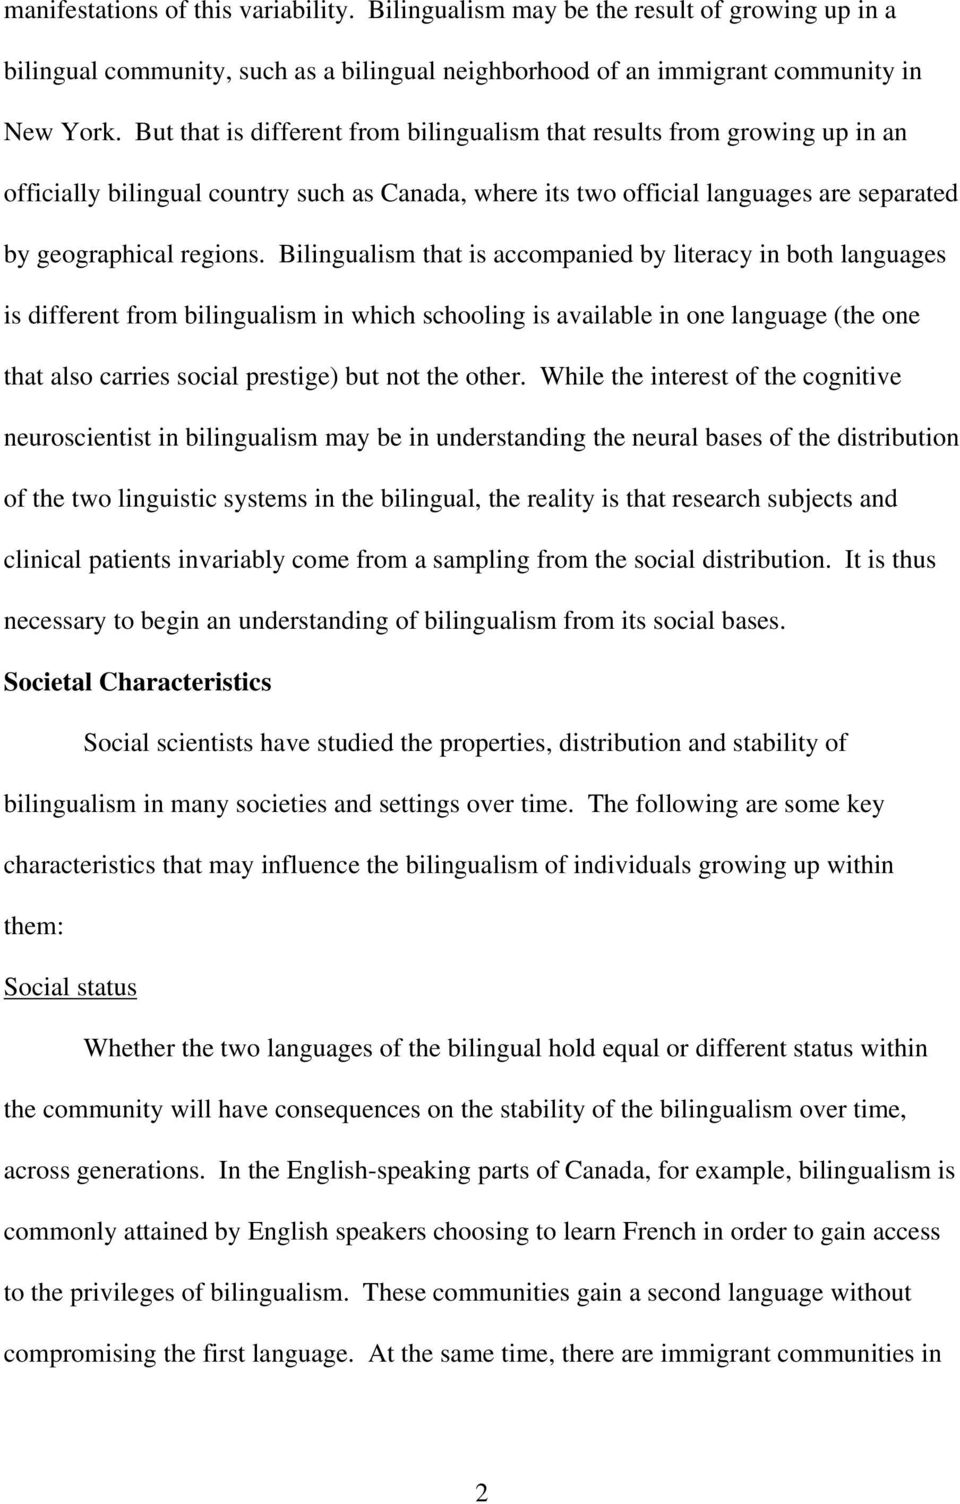 Bilingualism that is accompanied by literacy in both languages is different from bilingualism in which schooling is available in one language (the one that also carries social prestige) but not the